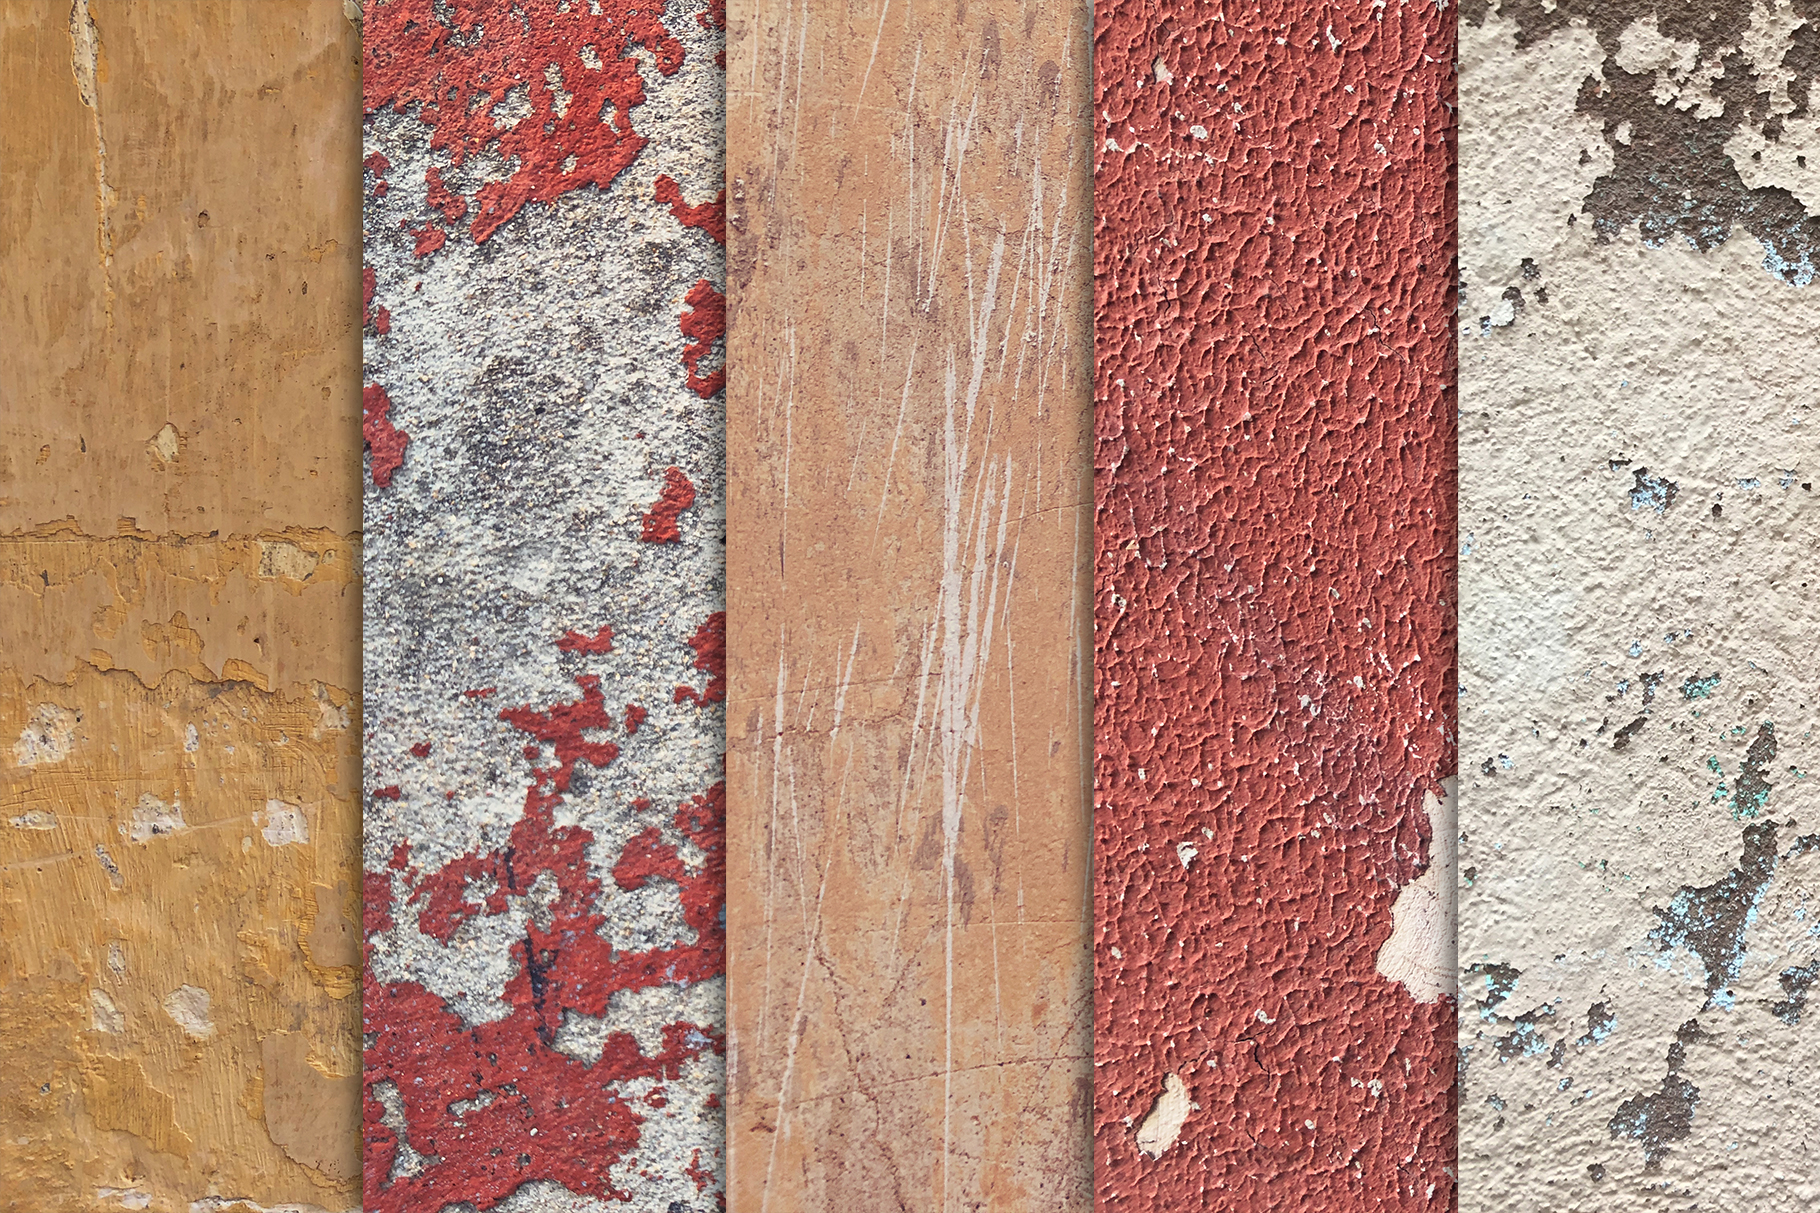 Grunge Wall Textures x10 vol2 example image 3